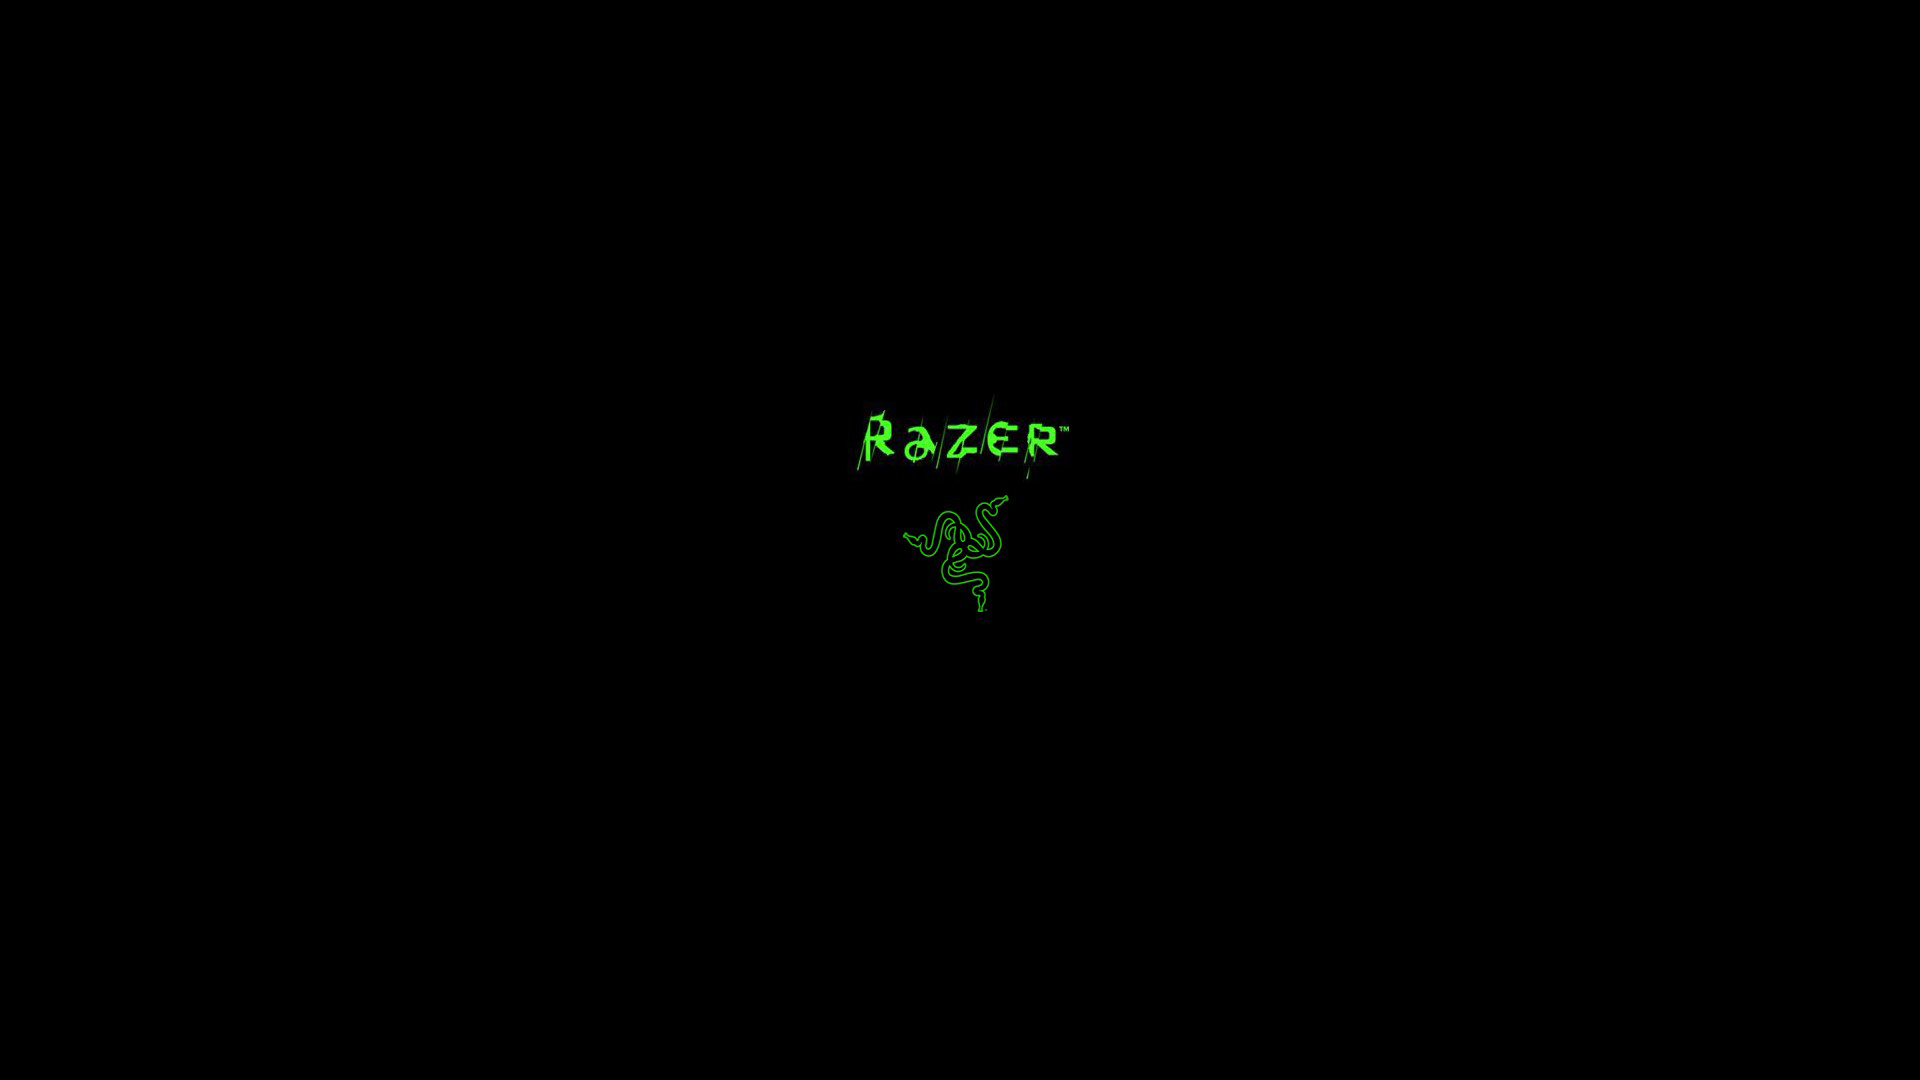 razer iphone wallpaper wallpapersafari